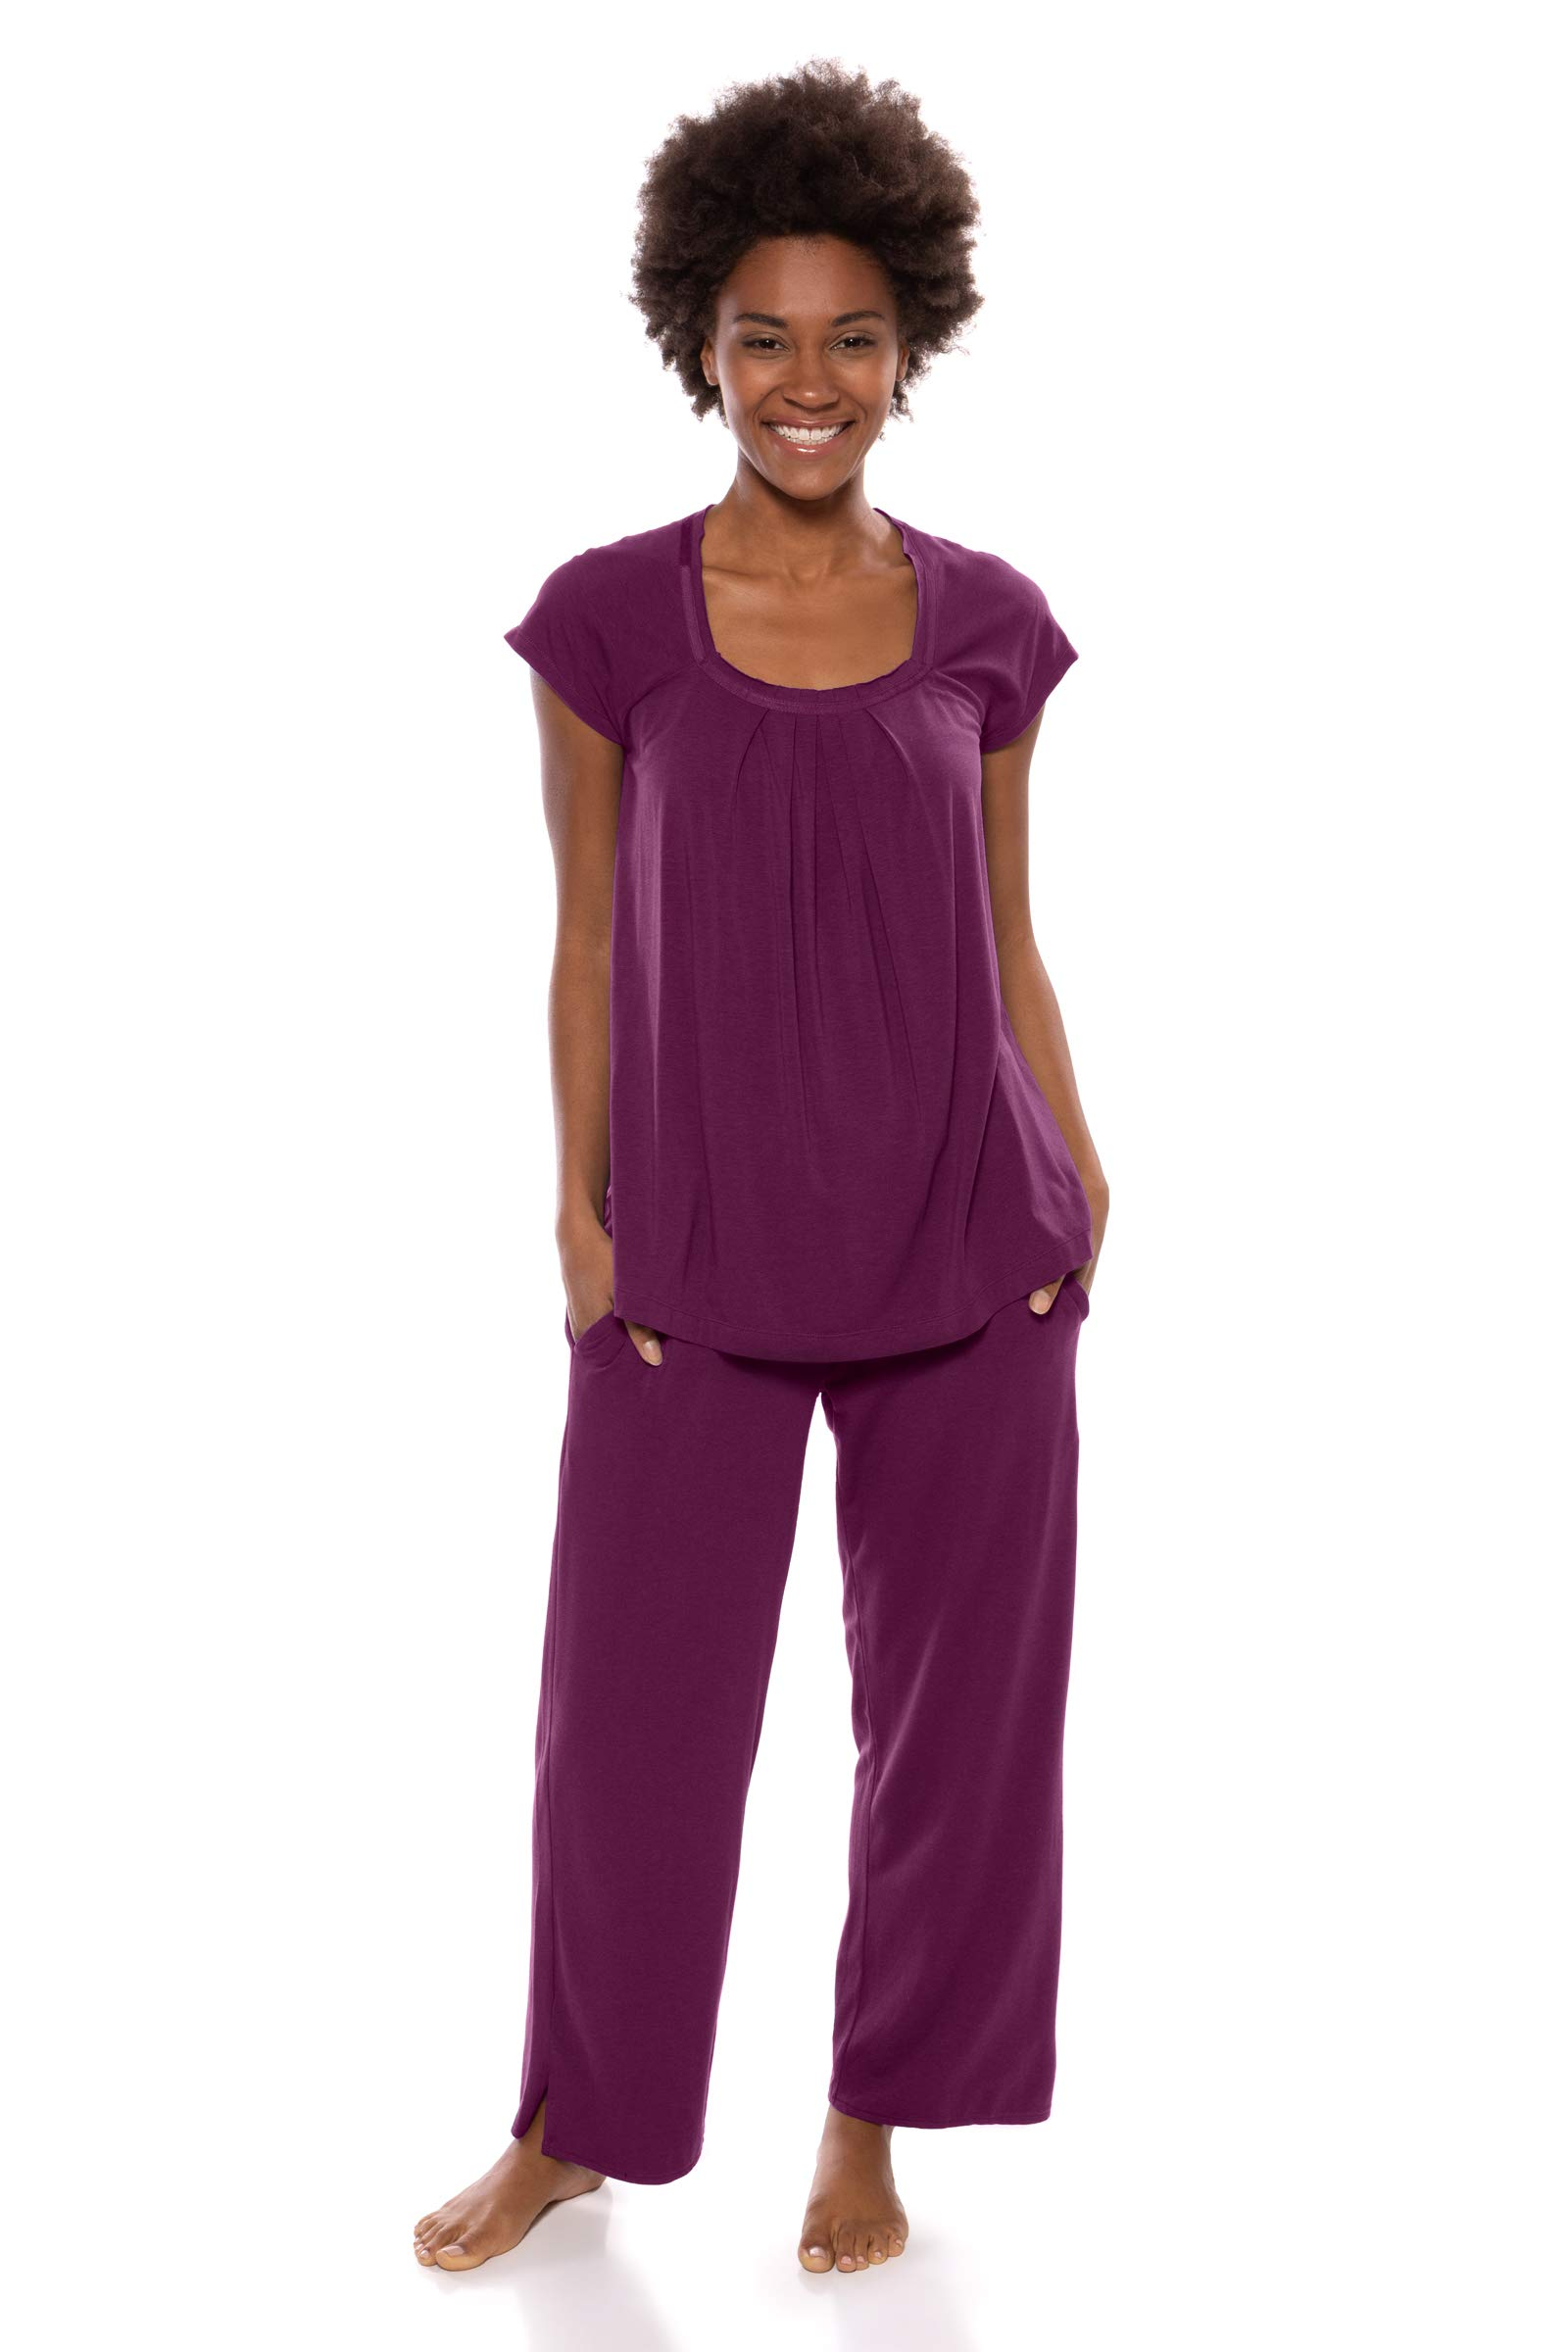 Women s Pajamas in Bamboo Viscose (Bamboo Bliss) Cozy Sleepwear Set by  Texere 484fa5f2f